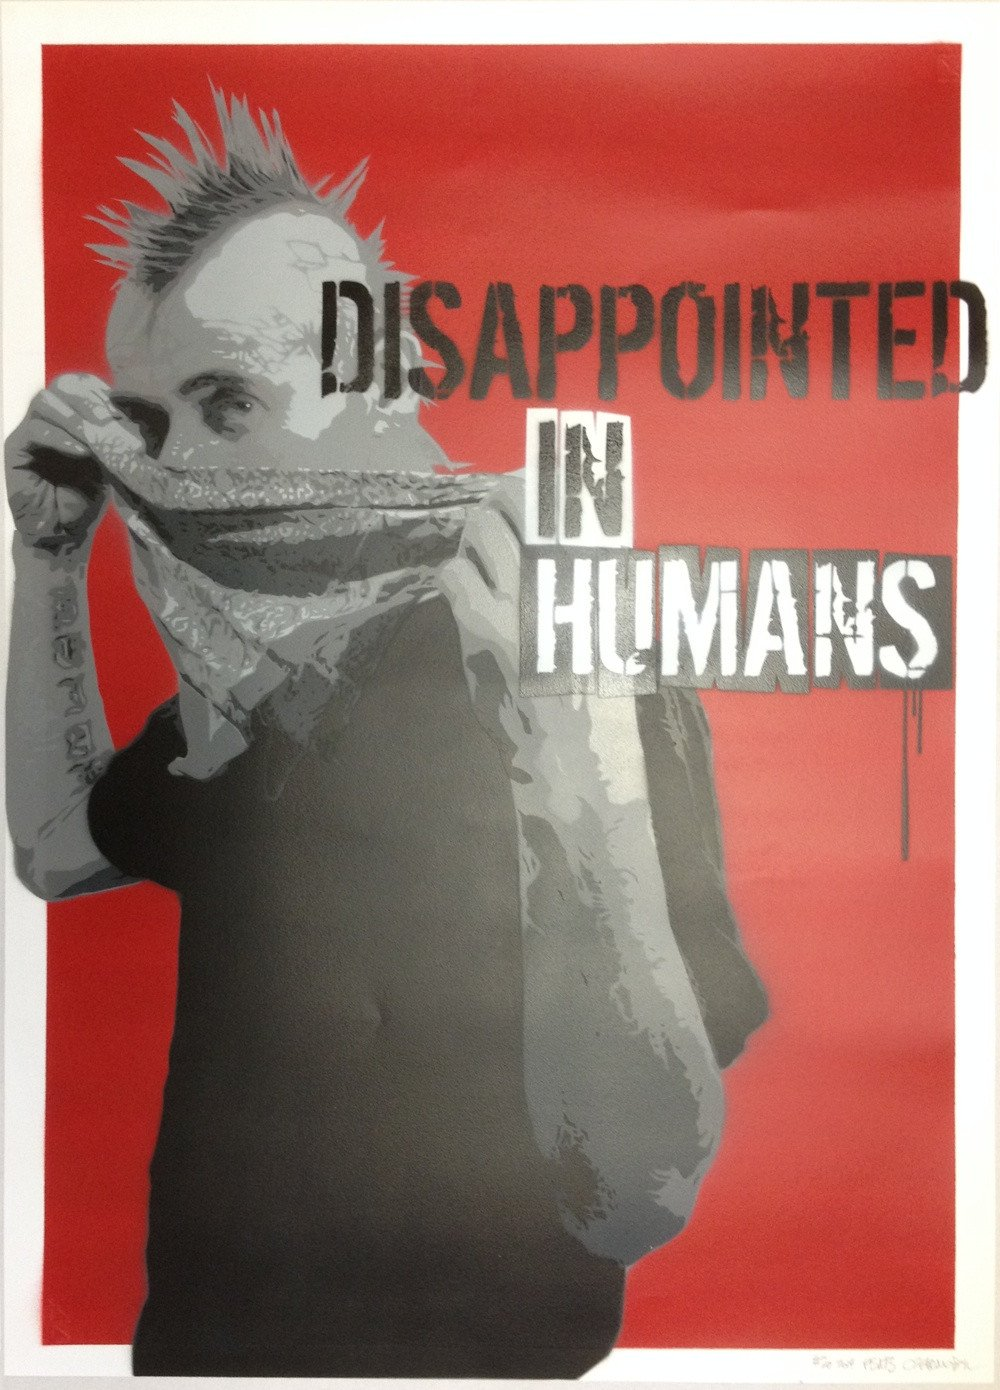 Czarnobyl X-ter & Pisa73: Disappointed in Humans #20 - prettyportal artshop, limited edition prints, urban contemporary art, streetart